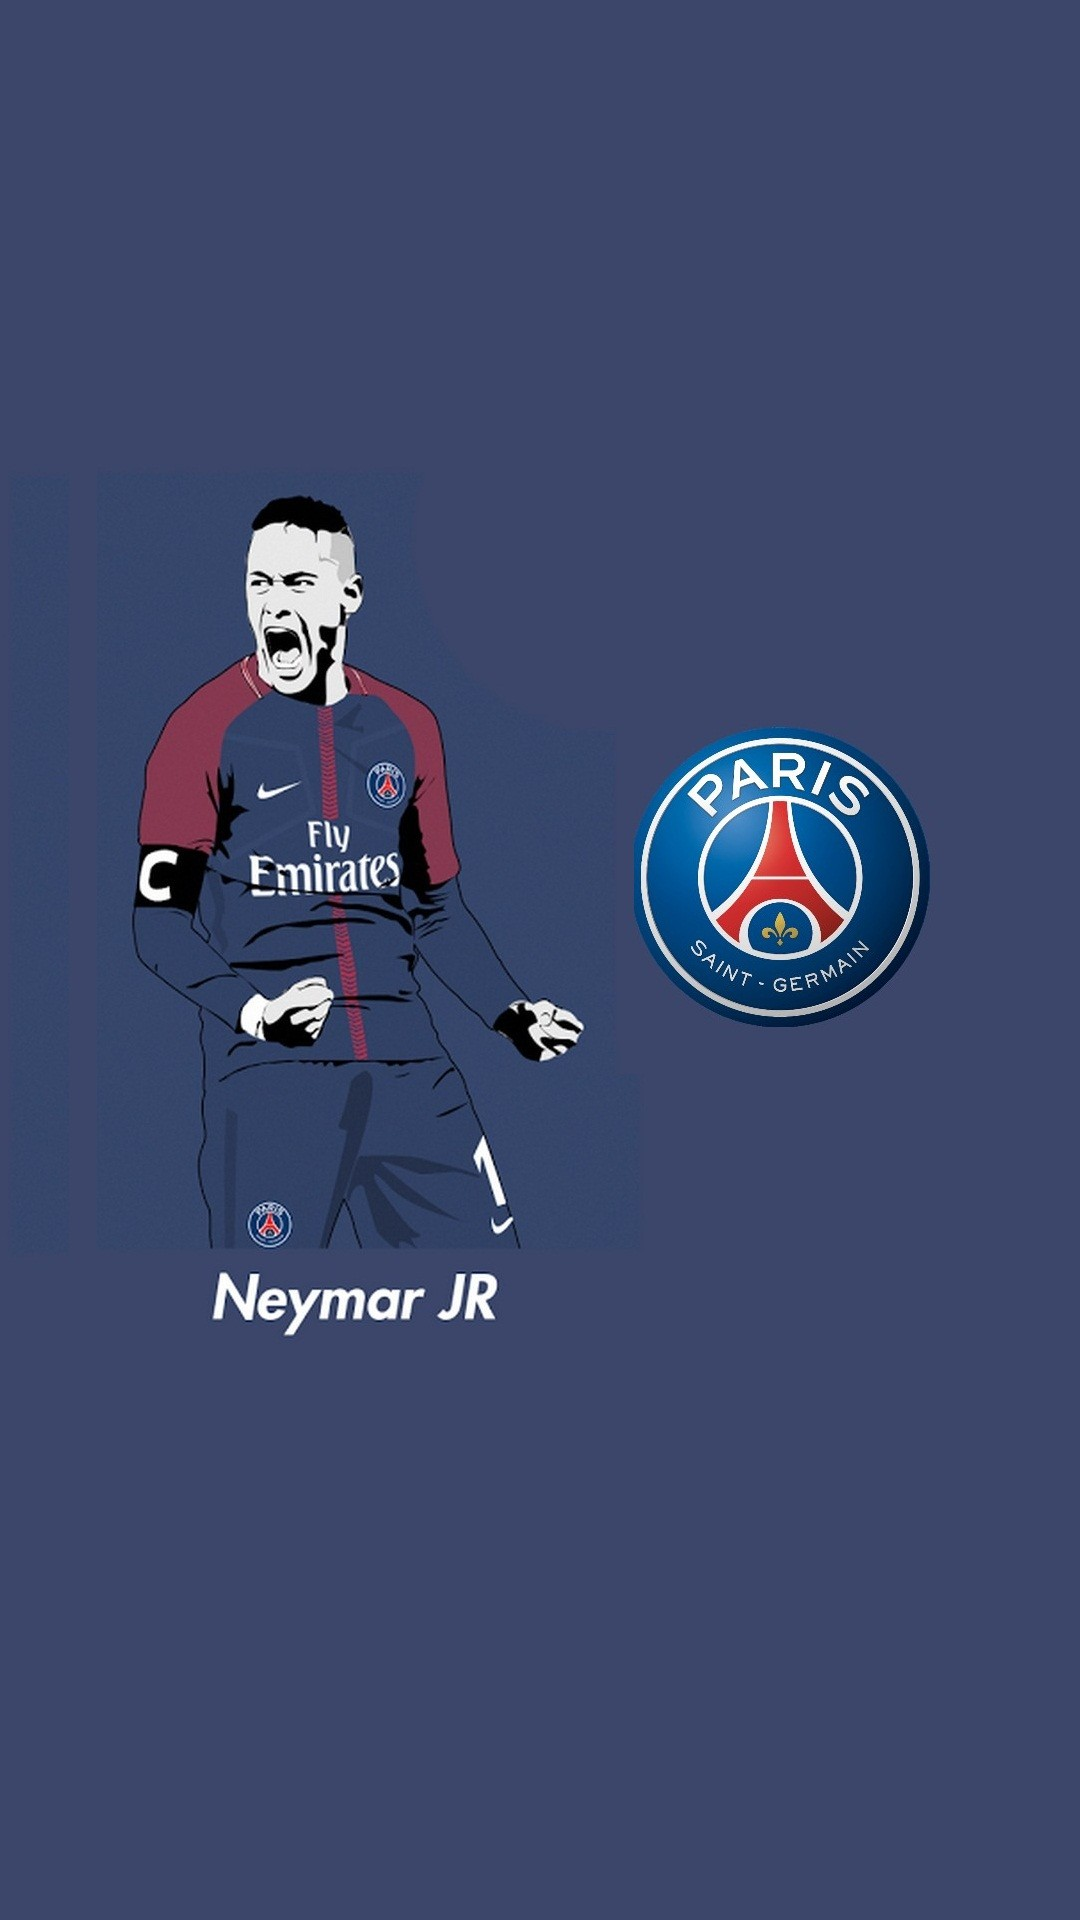 psg wallpaper enwallpaper